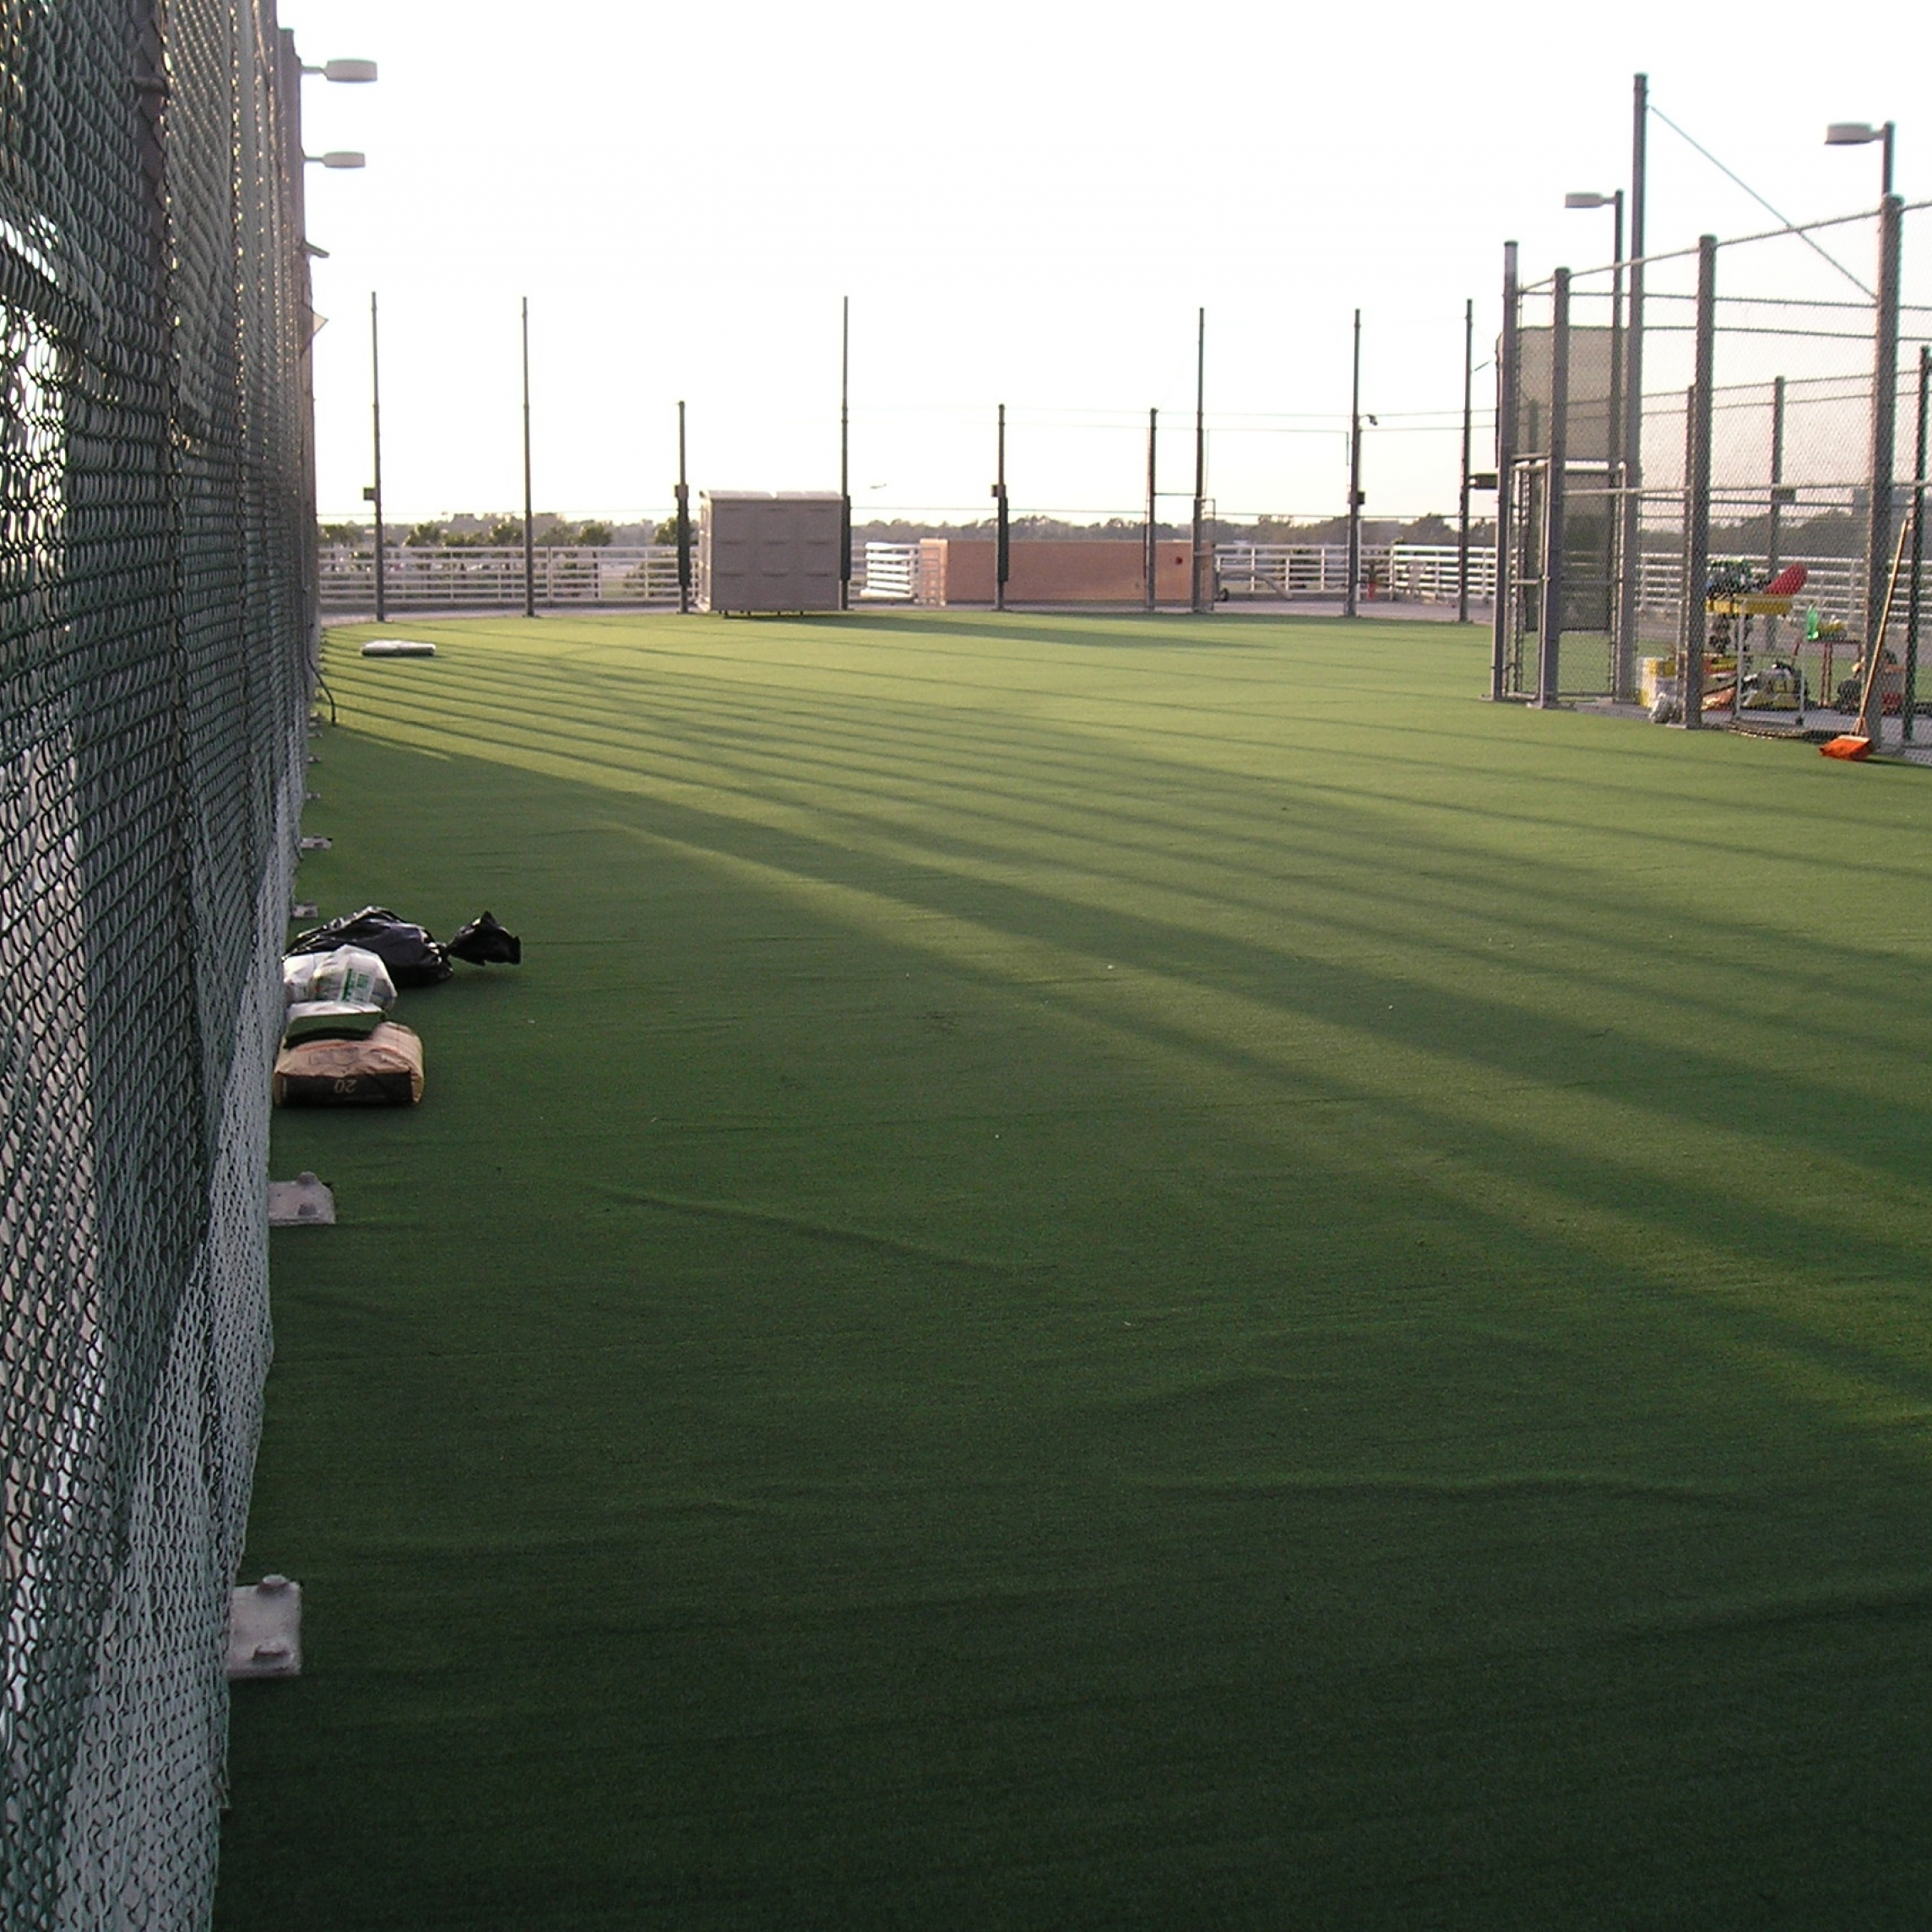 Trainers Turf-63 artificial grass installation,installing artificial grass,artificial turf installation,how to install artificial turf,turf installation